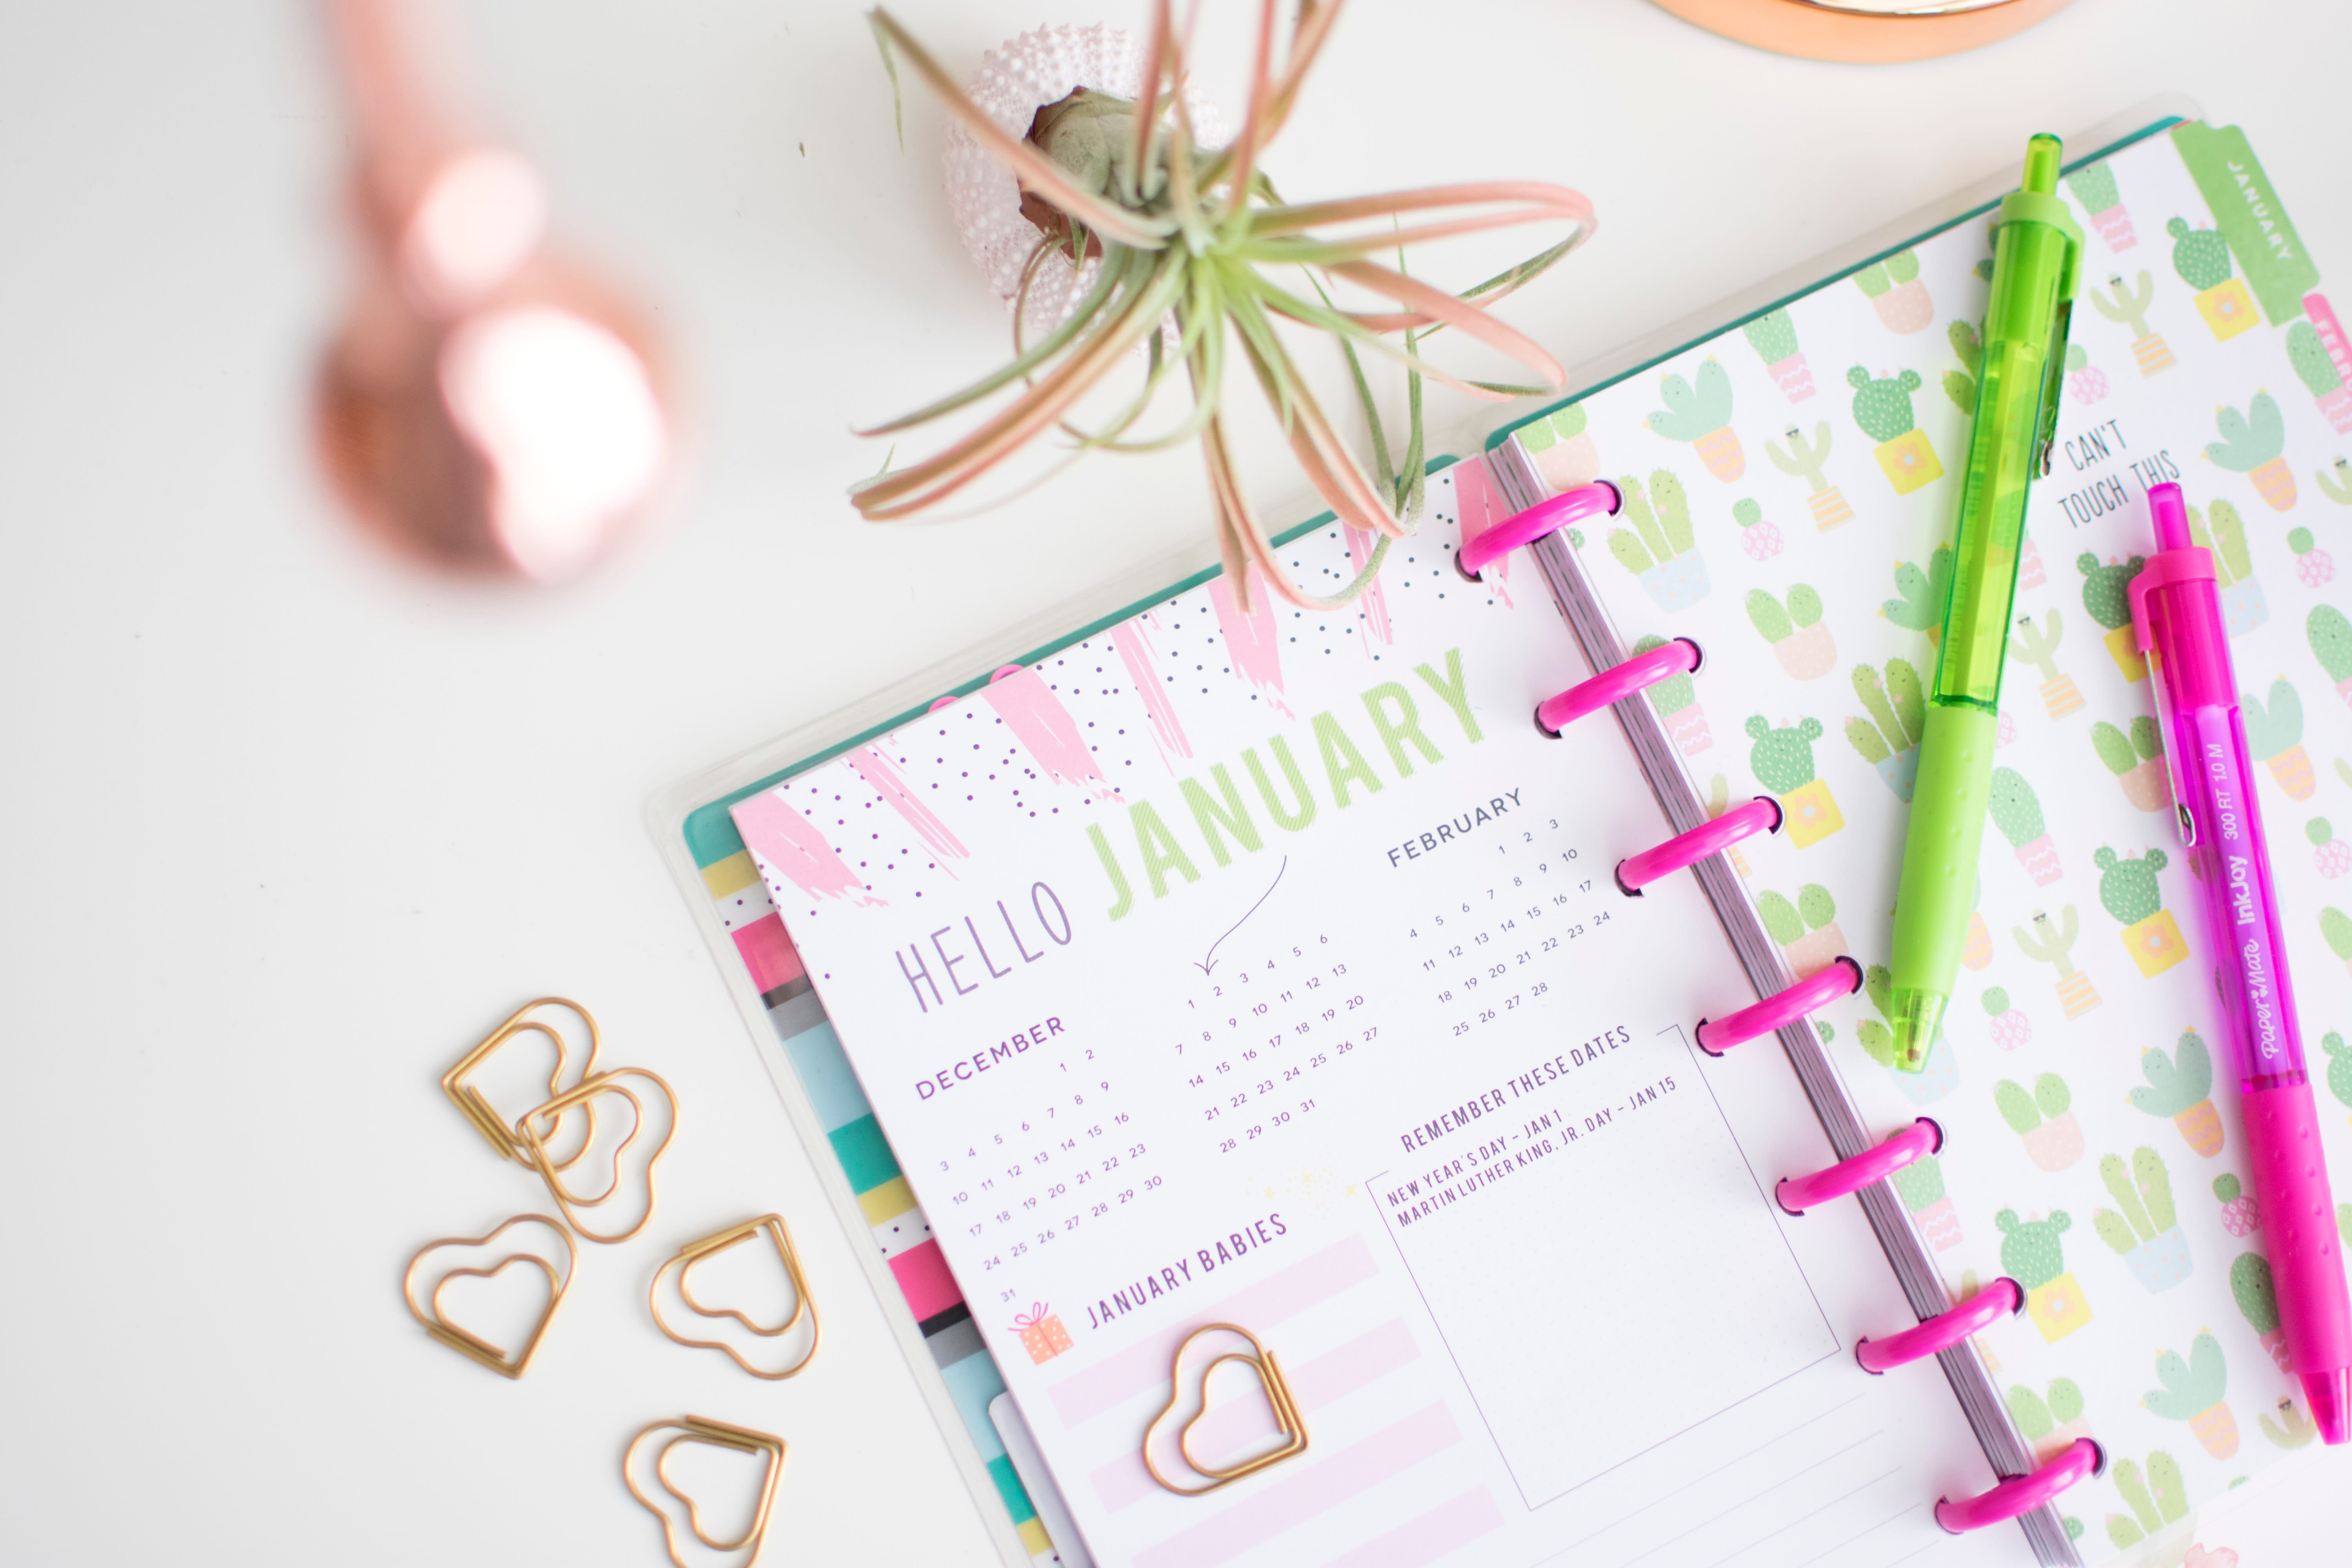 How to best use a paper day planner to help you meet your money goals, according to experts